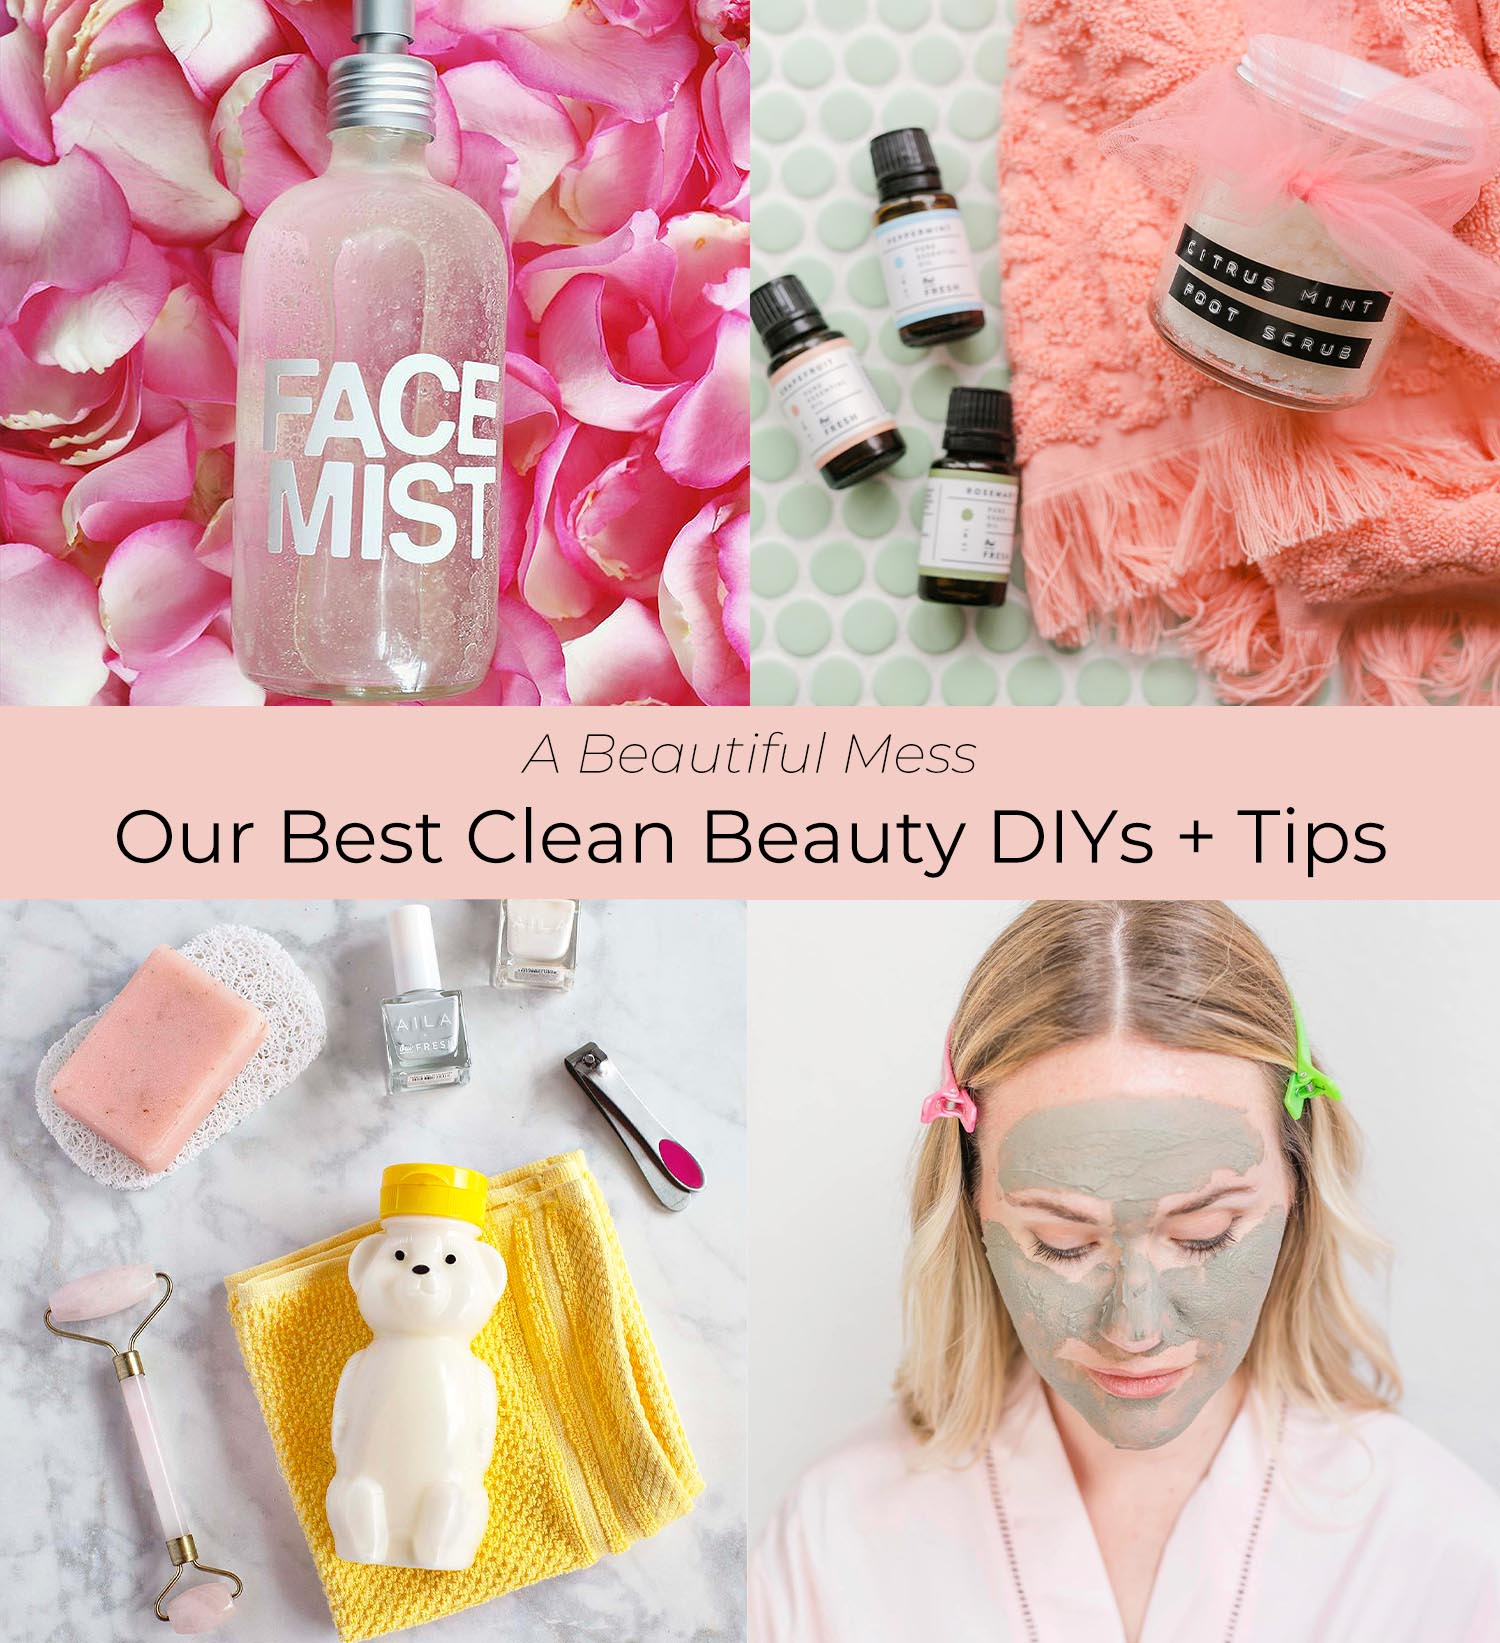 Our Best Clean Beauty DIYs (and Tips!)